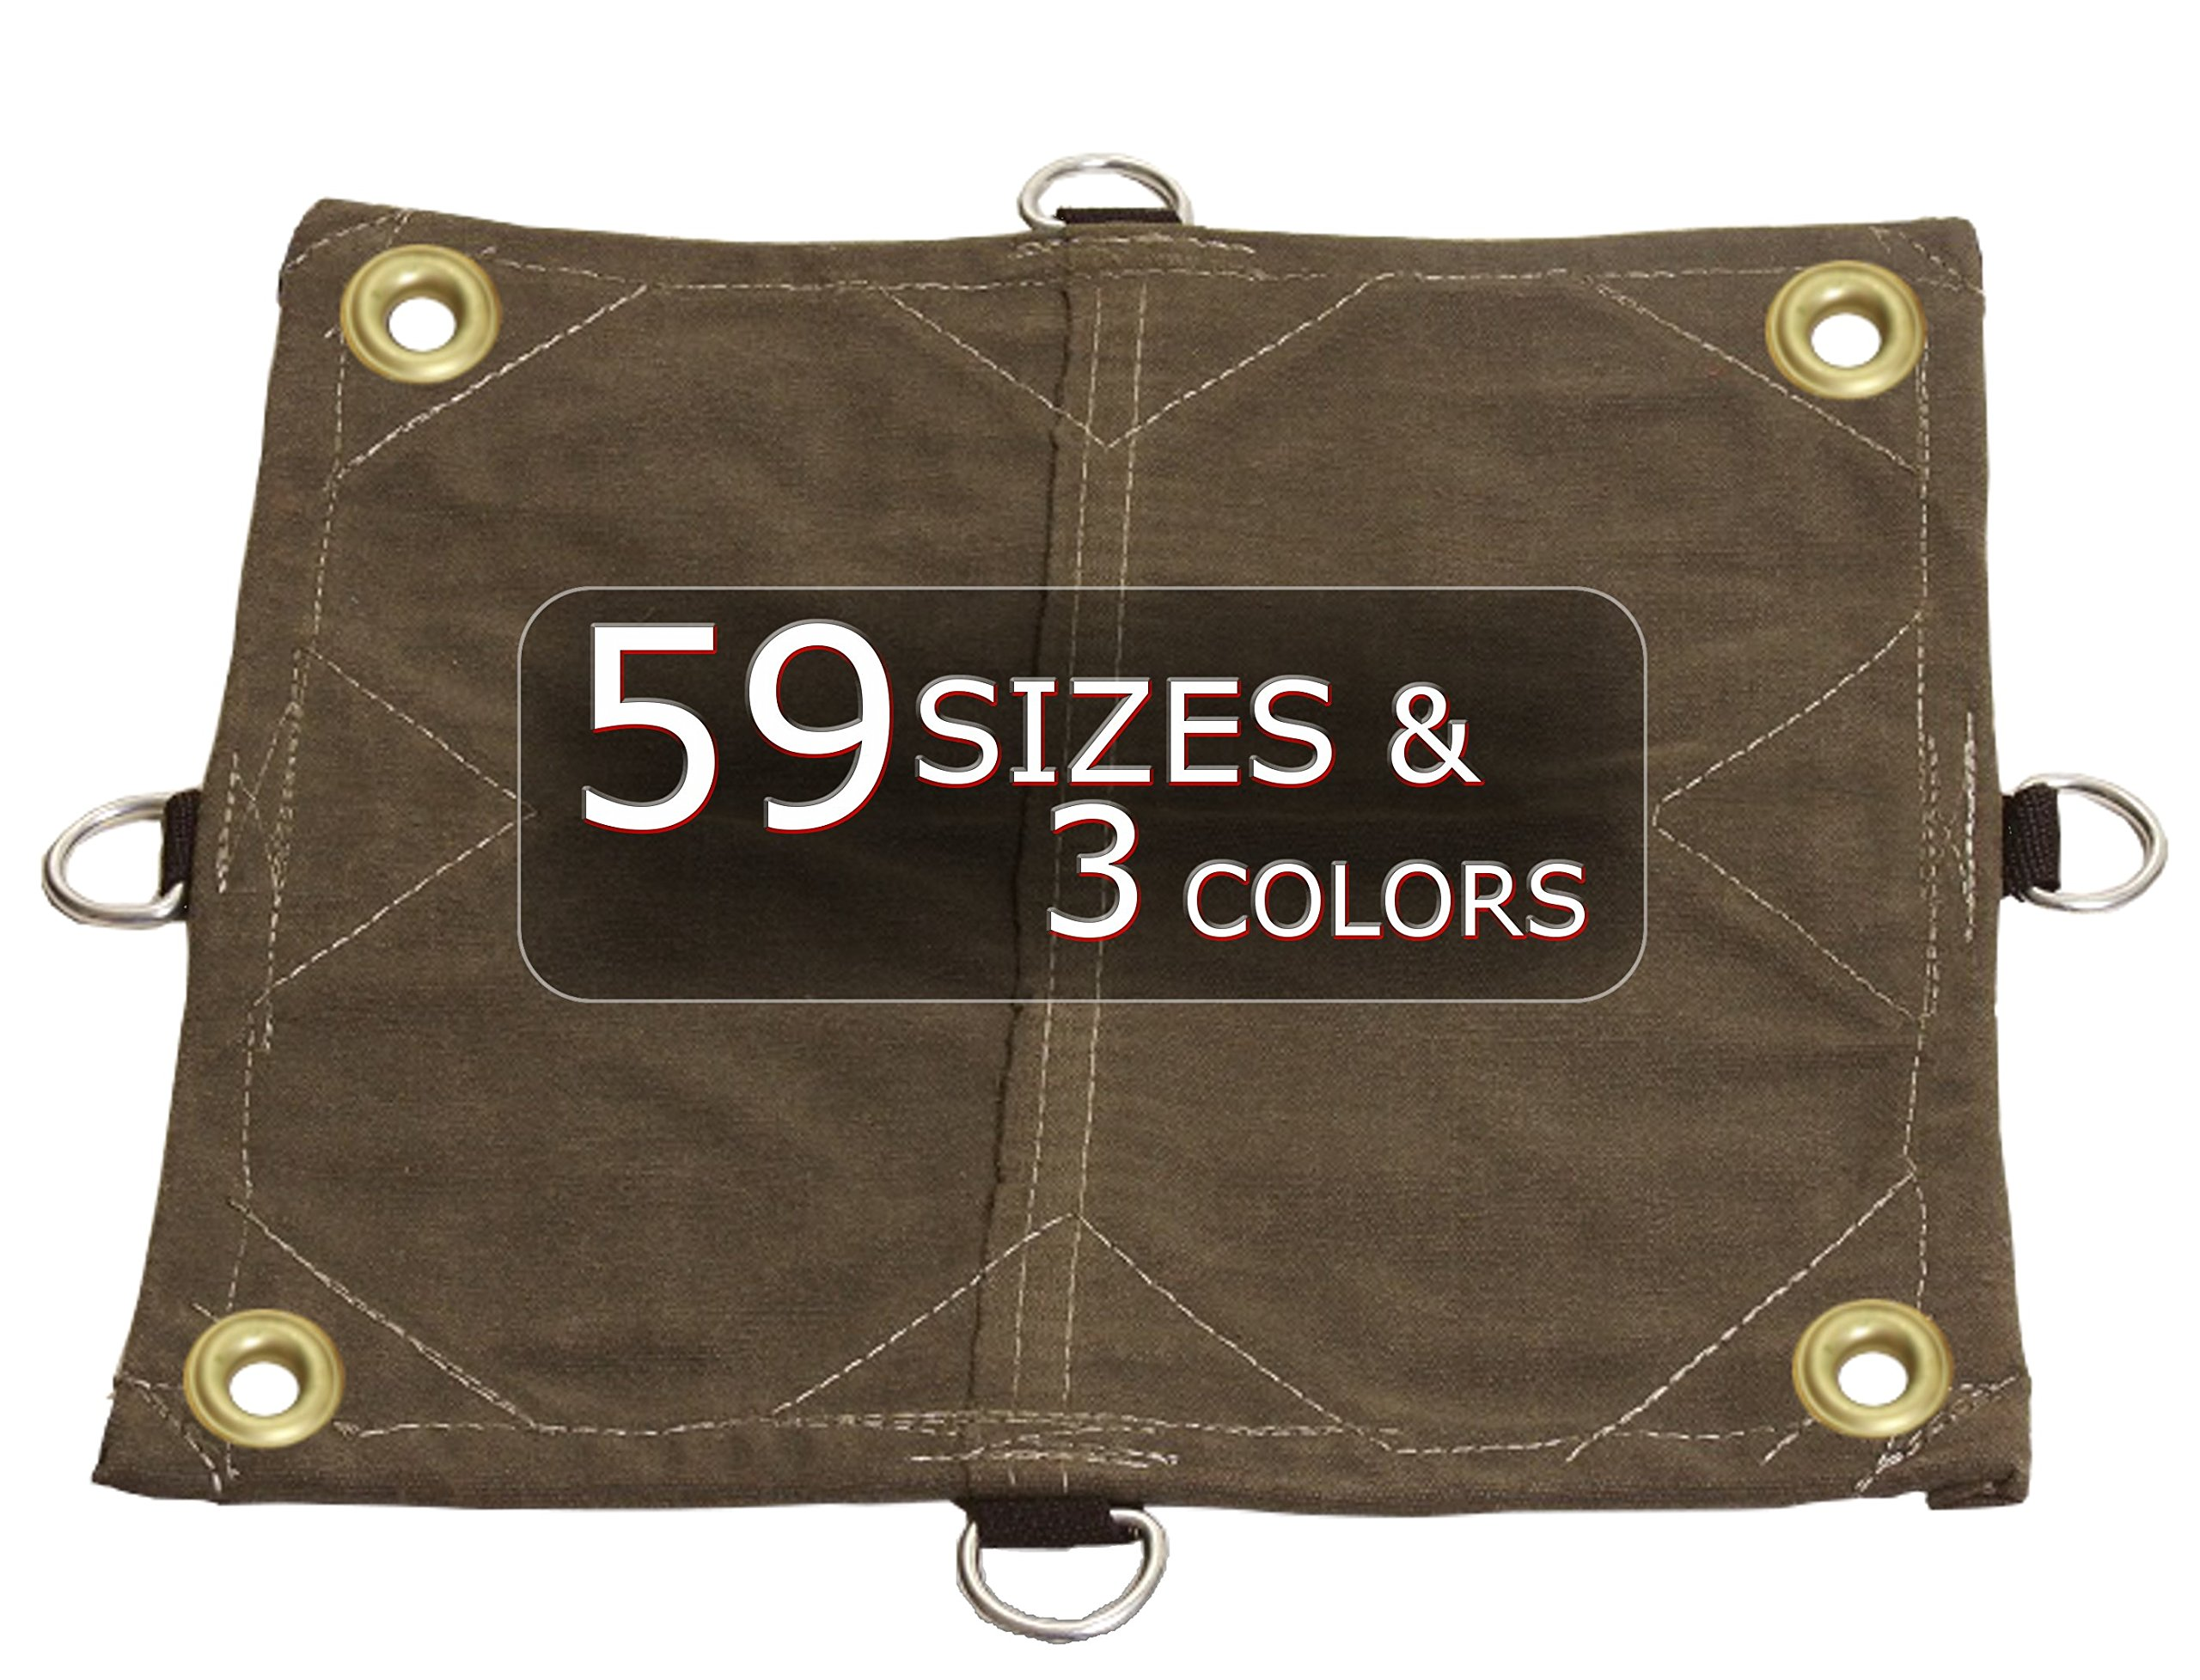 20x40 12oz Heavy Duty Canvas Tarp with D-Rings and Corner Grommets - Extreme Performance - Equipment, Farm, Home, Woodpile, Construction, Machinery Cover.